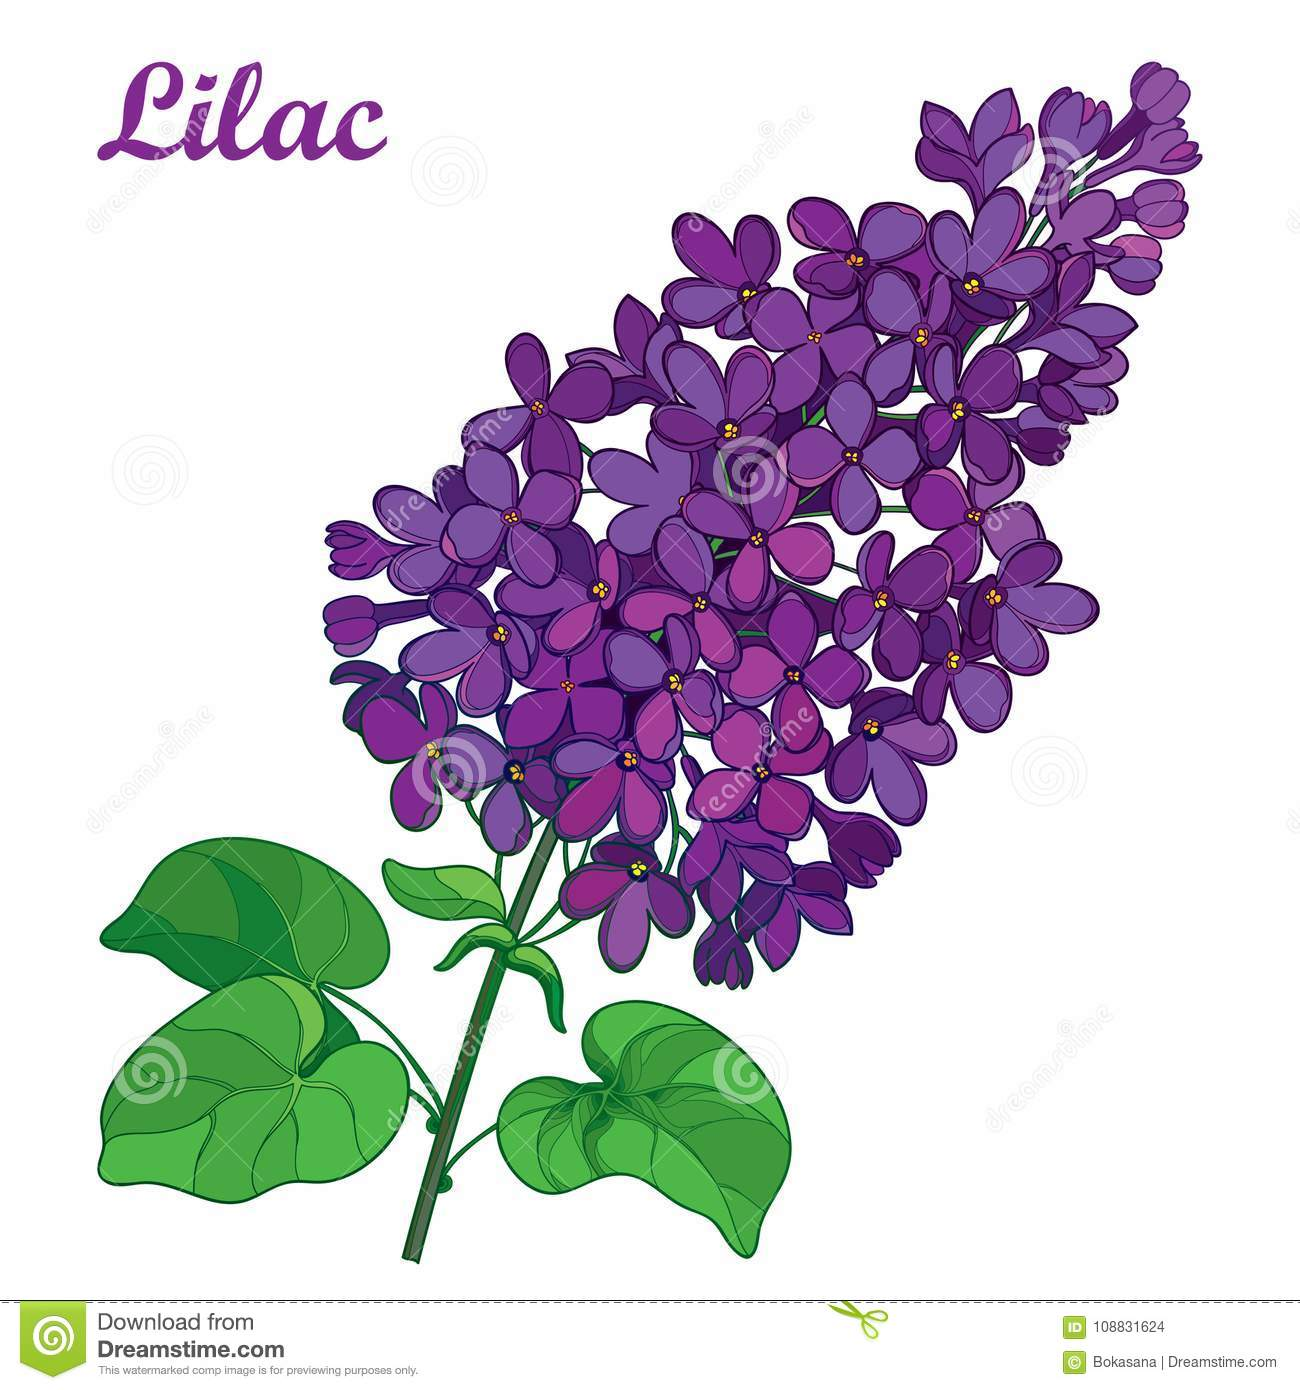 Vector branch with outline purple Lilac or Syringa flower bunch and ornate green leaves isolated on white background.